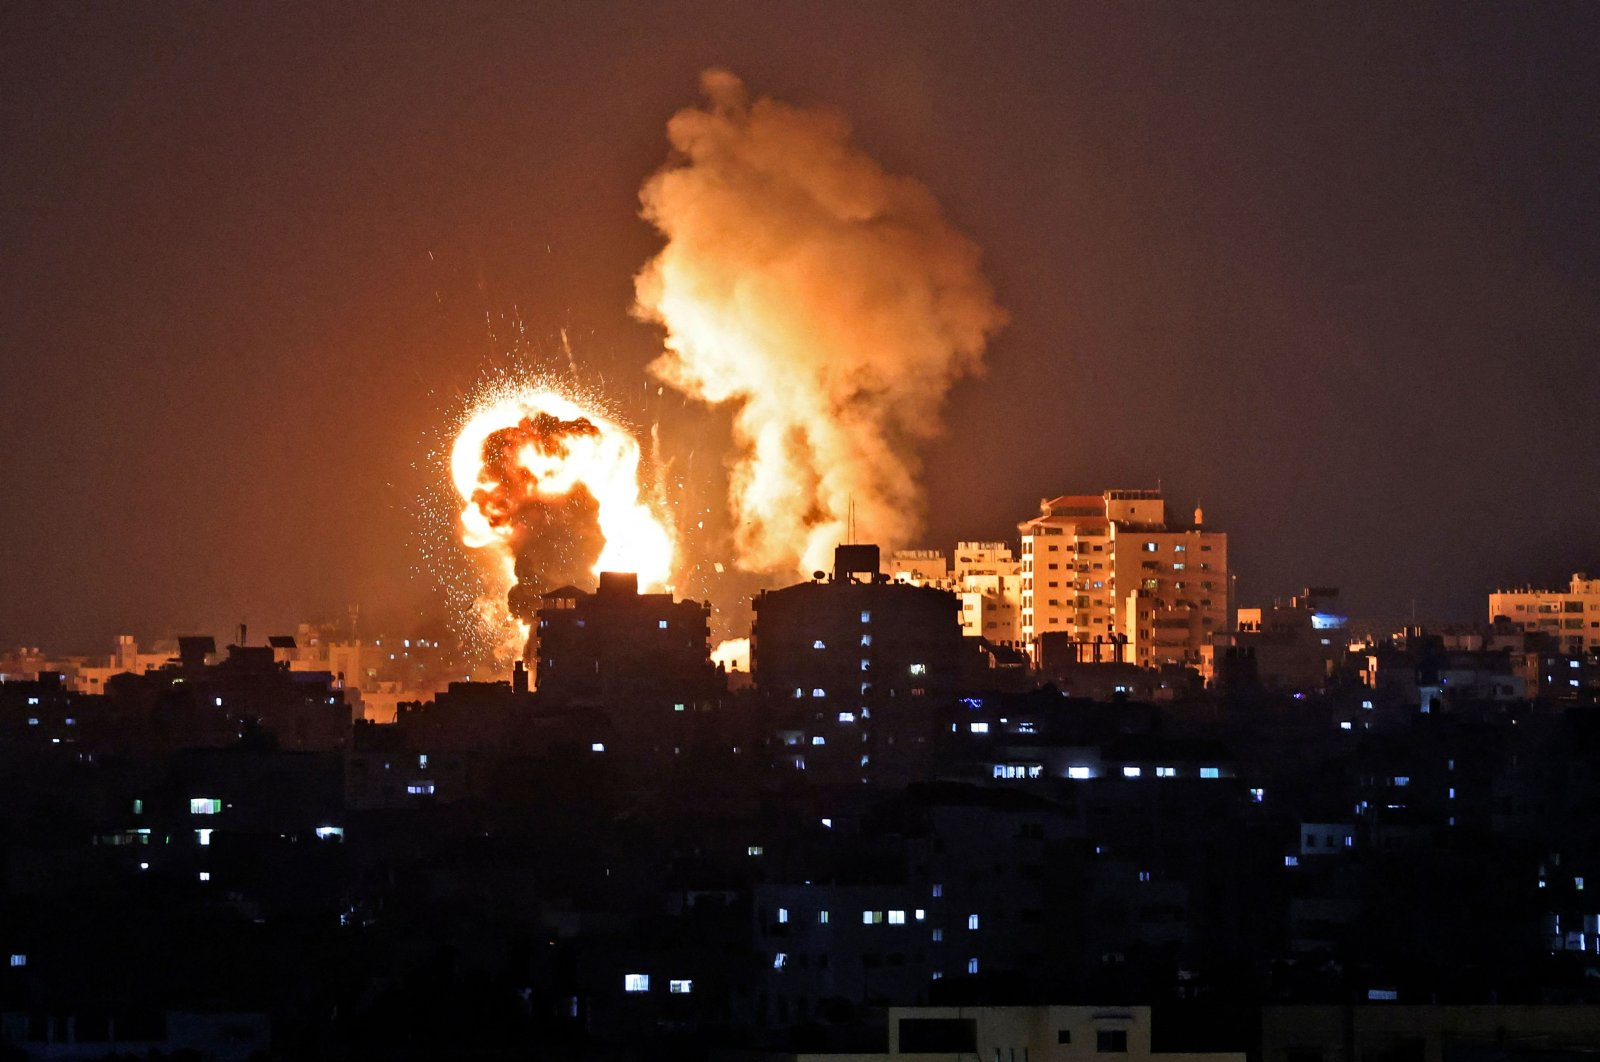 Fire billows from Israeli airstrikes on the Gaza Strip, Palestine, May 10, 2021. (AFP Photo)